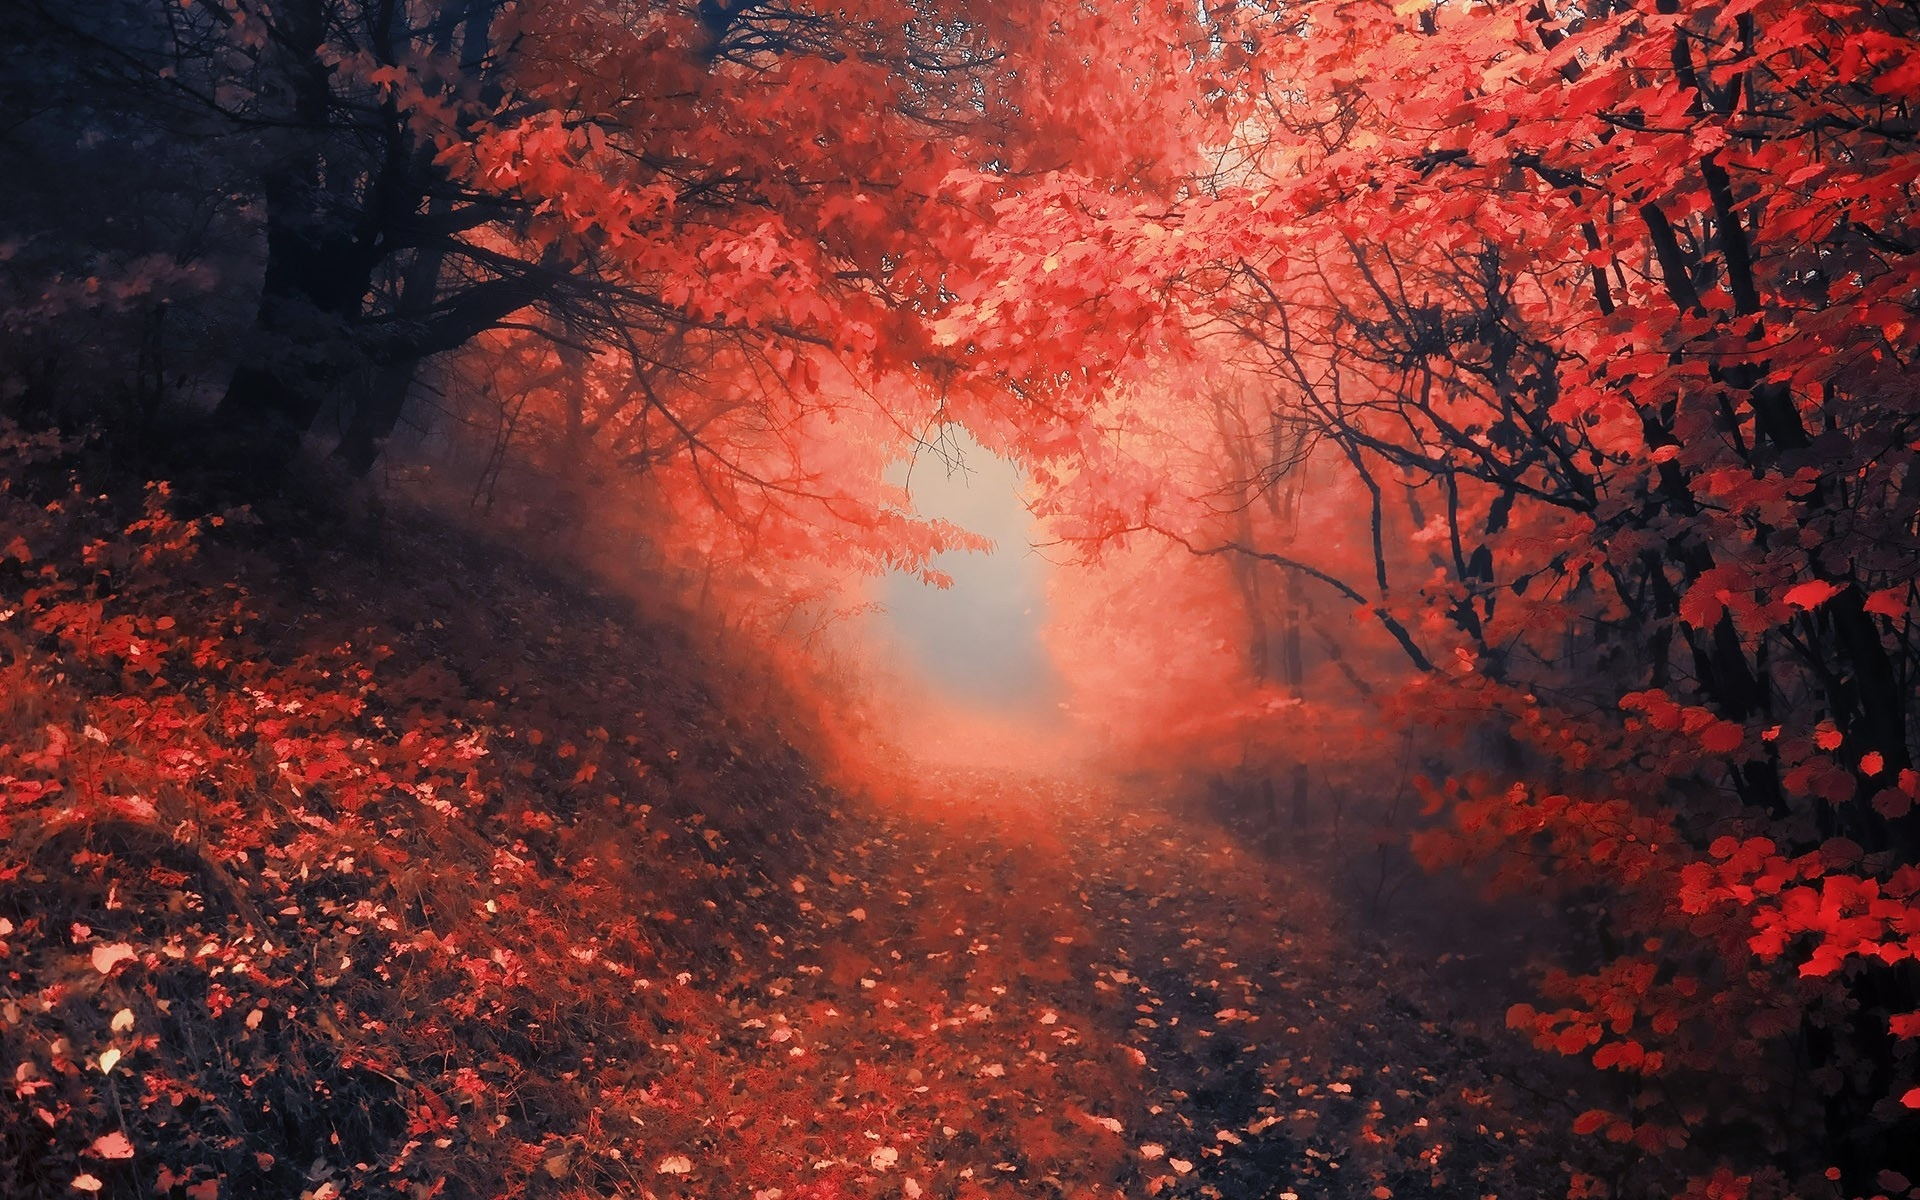 Nature roads landscapes trees forest path trail leaves red autumn